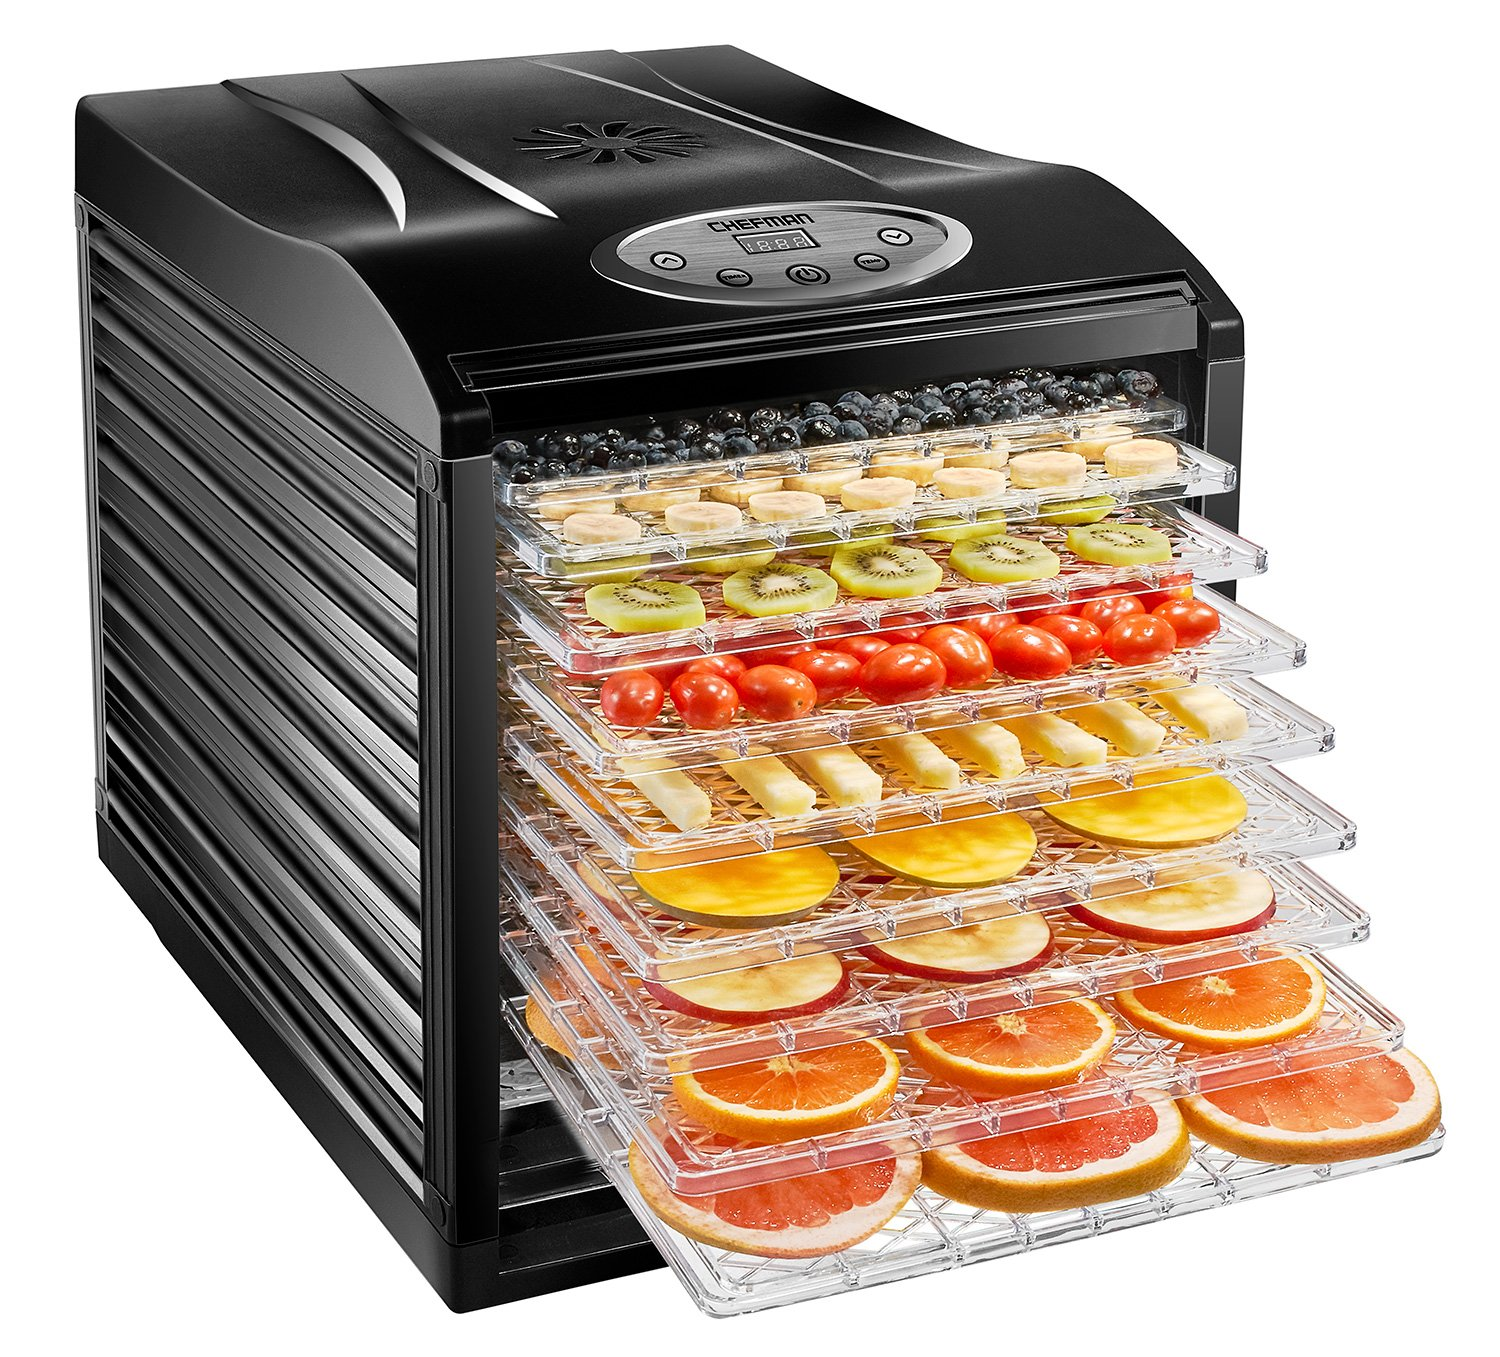 Best dehydrator for jerky